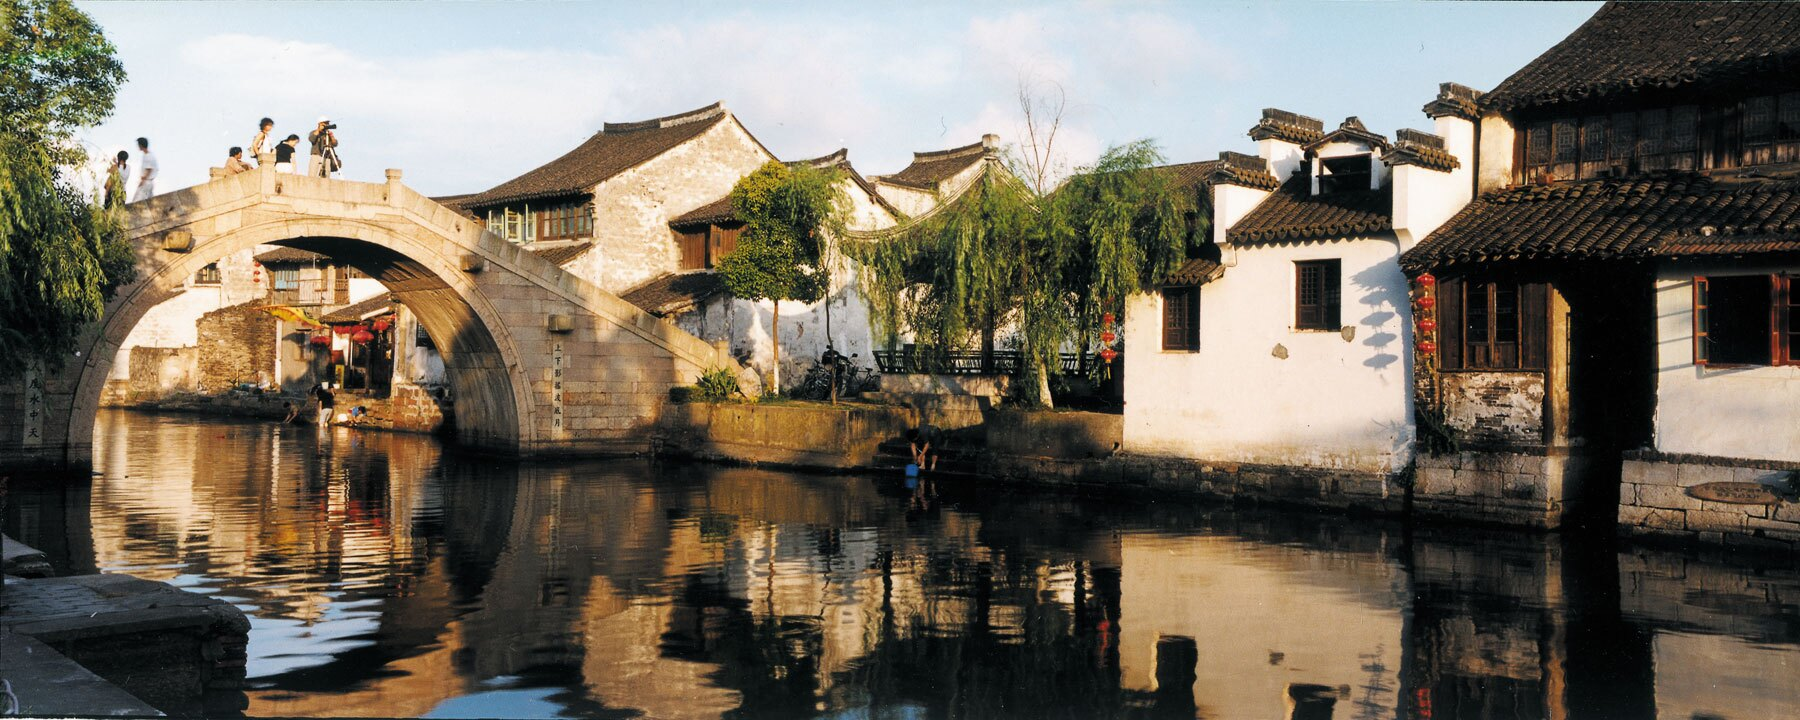 Tongli Water Towns